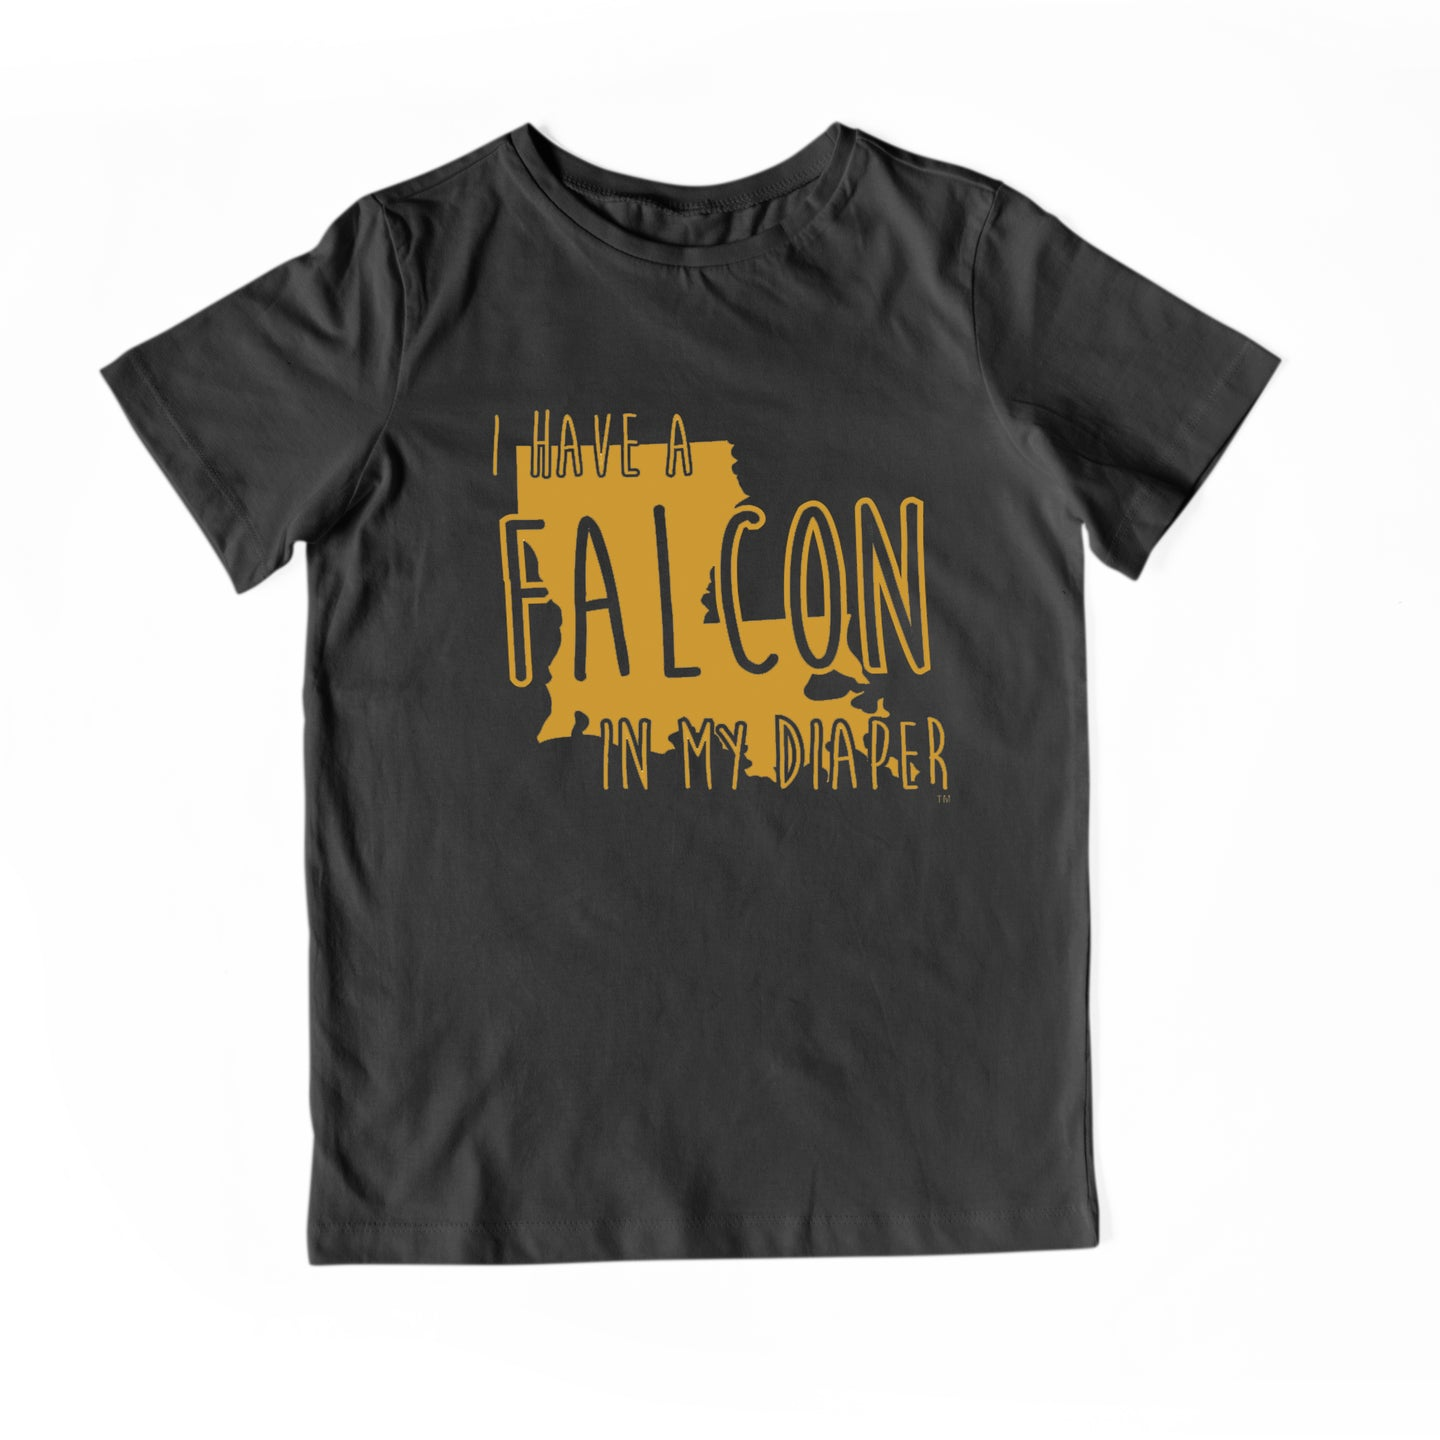 I HAVE A FALCON IN MY DIAPER Child Tee